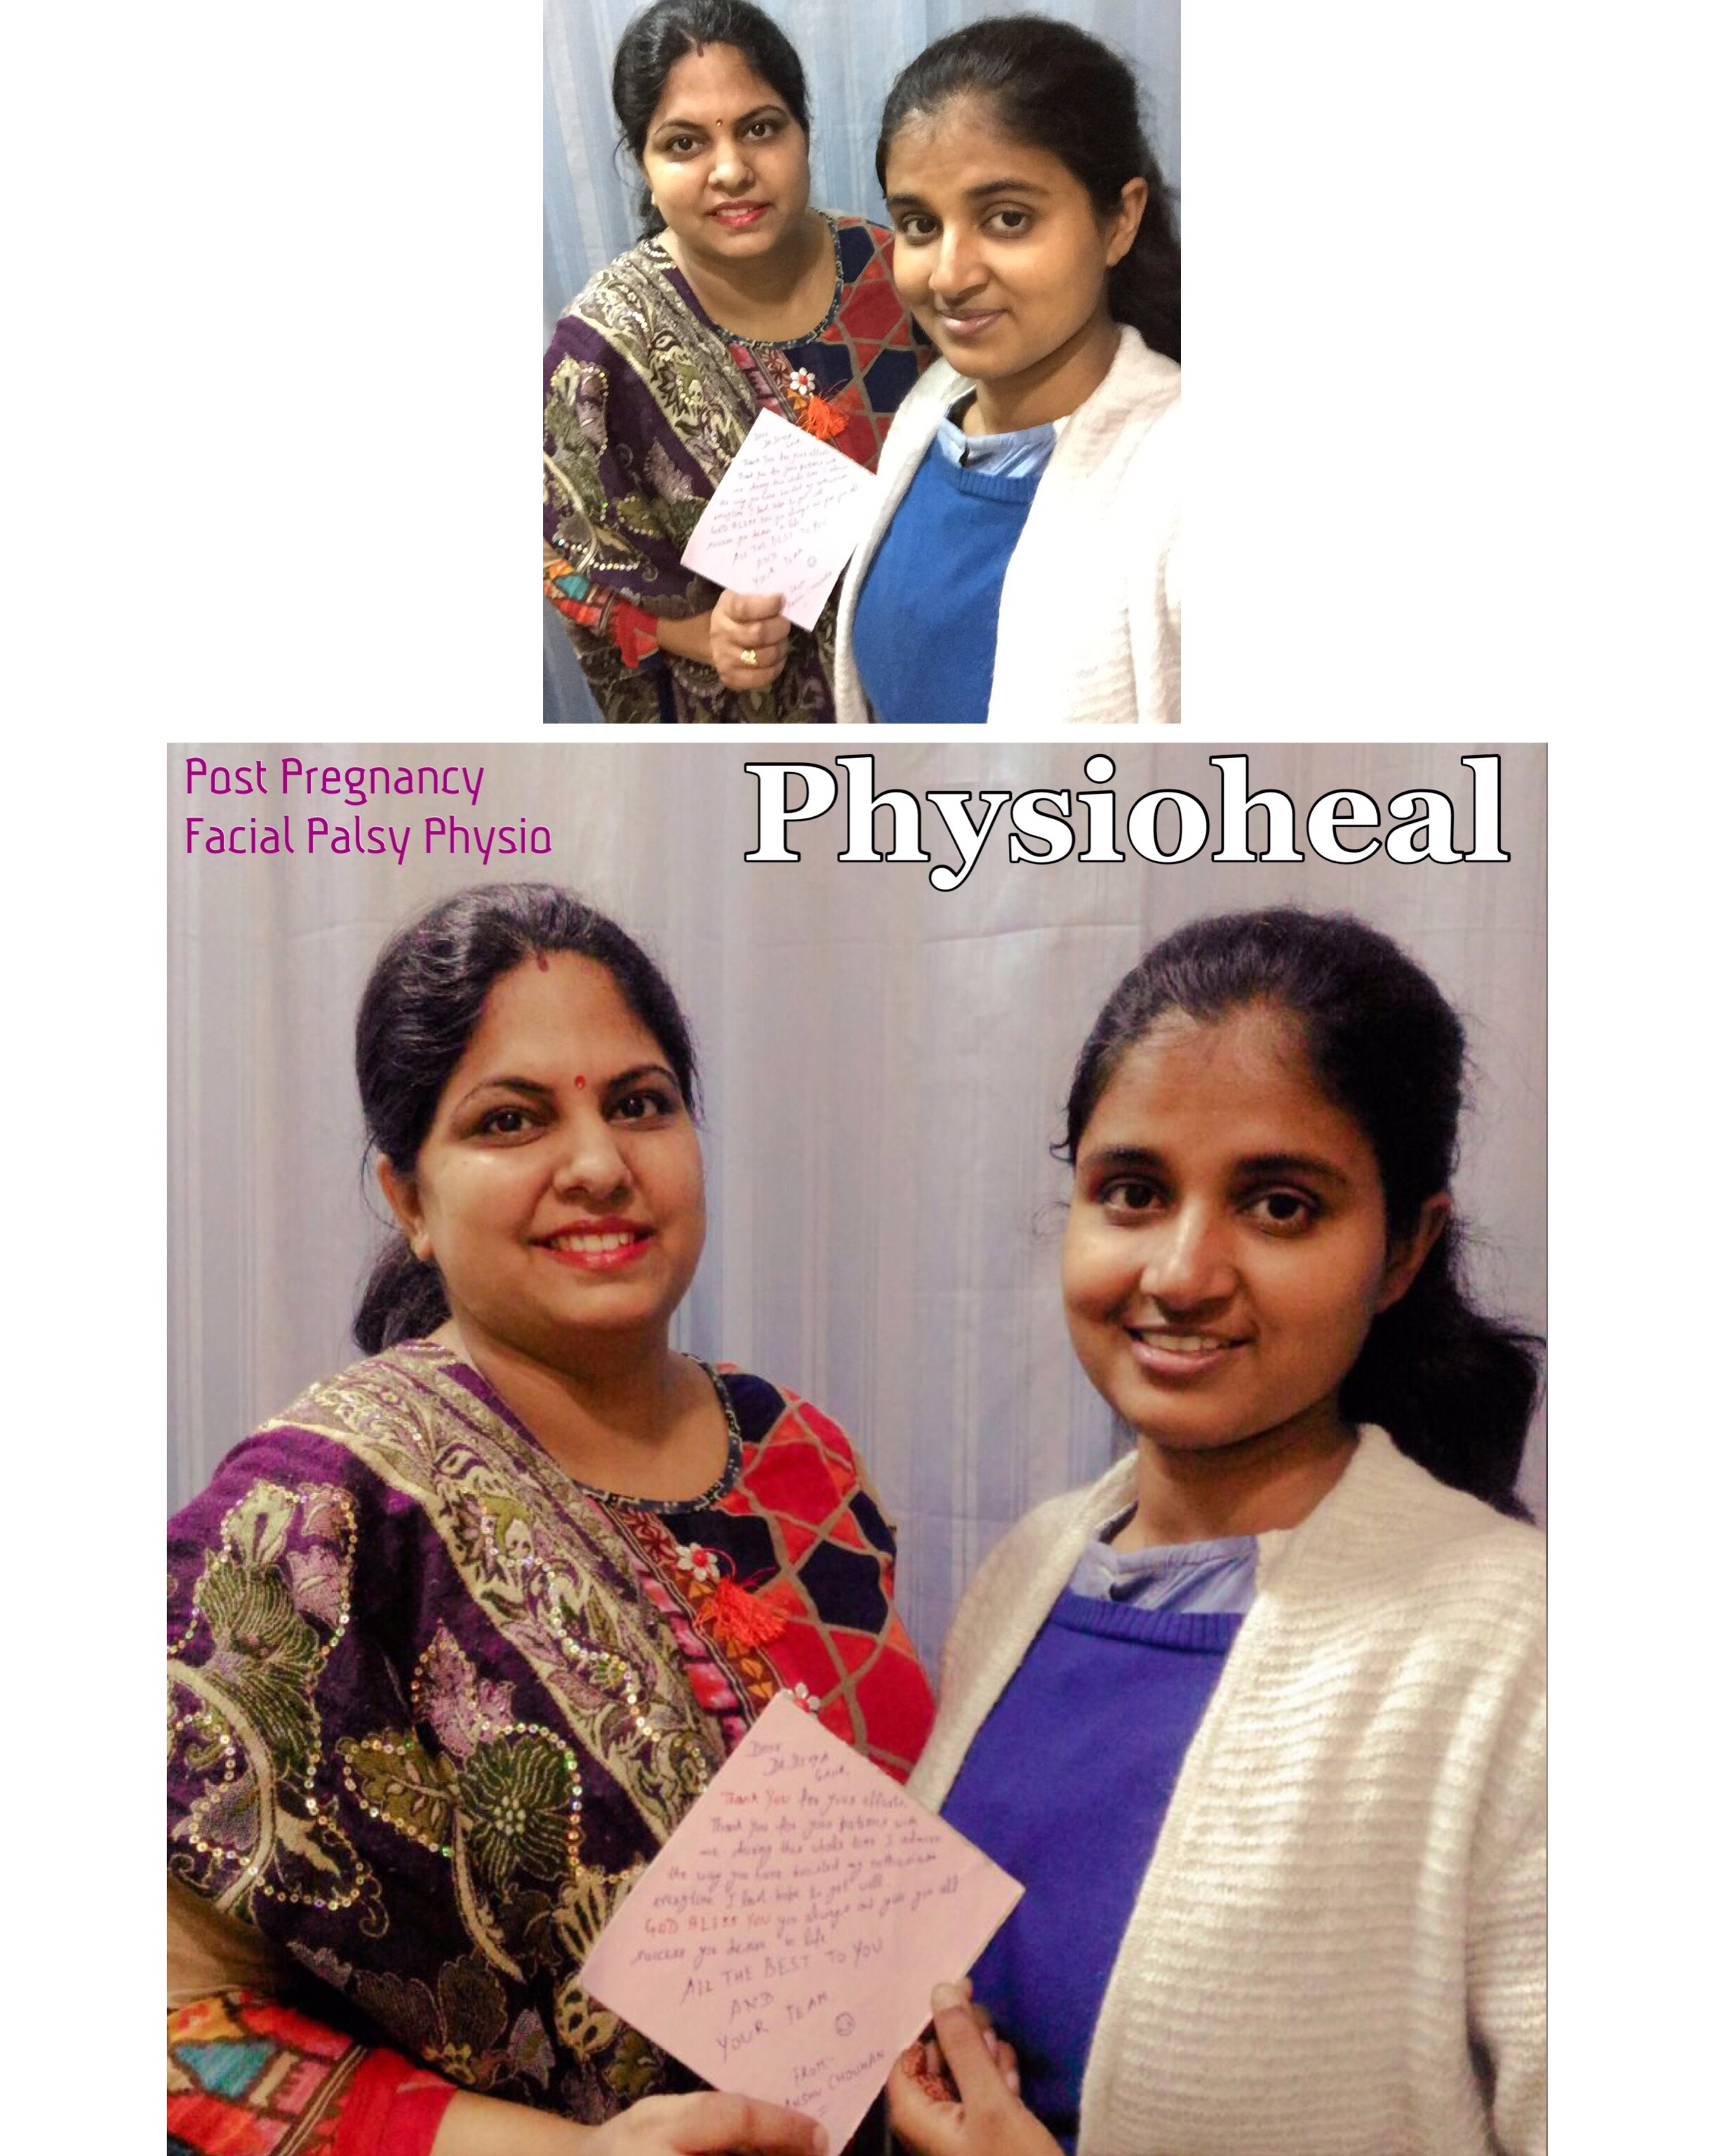 Therapeutic Laser & Post Pregnancy Facial Palsy!